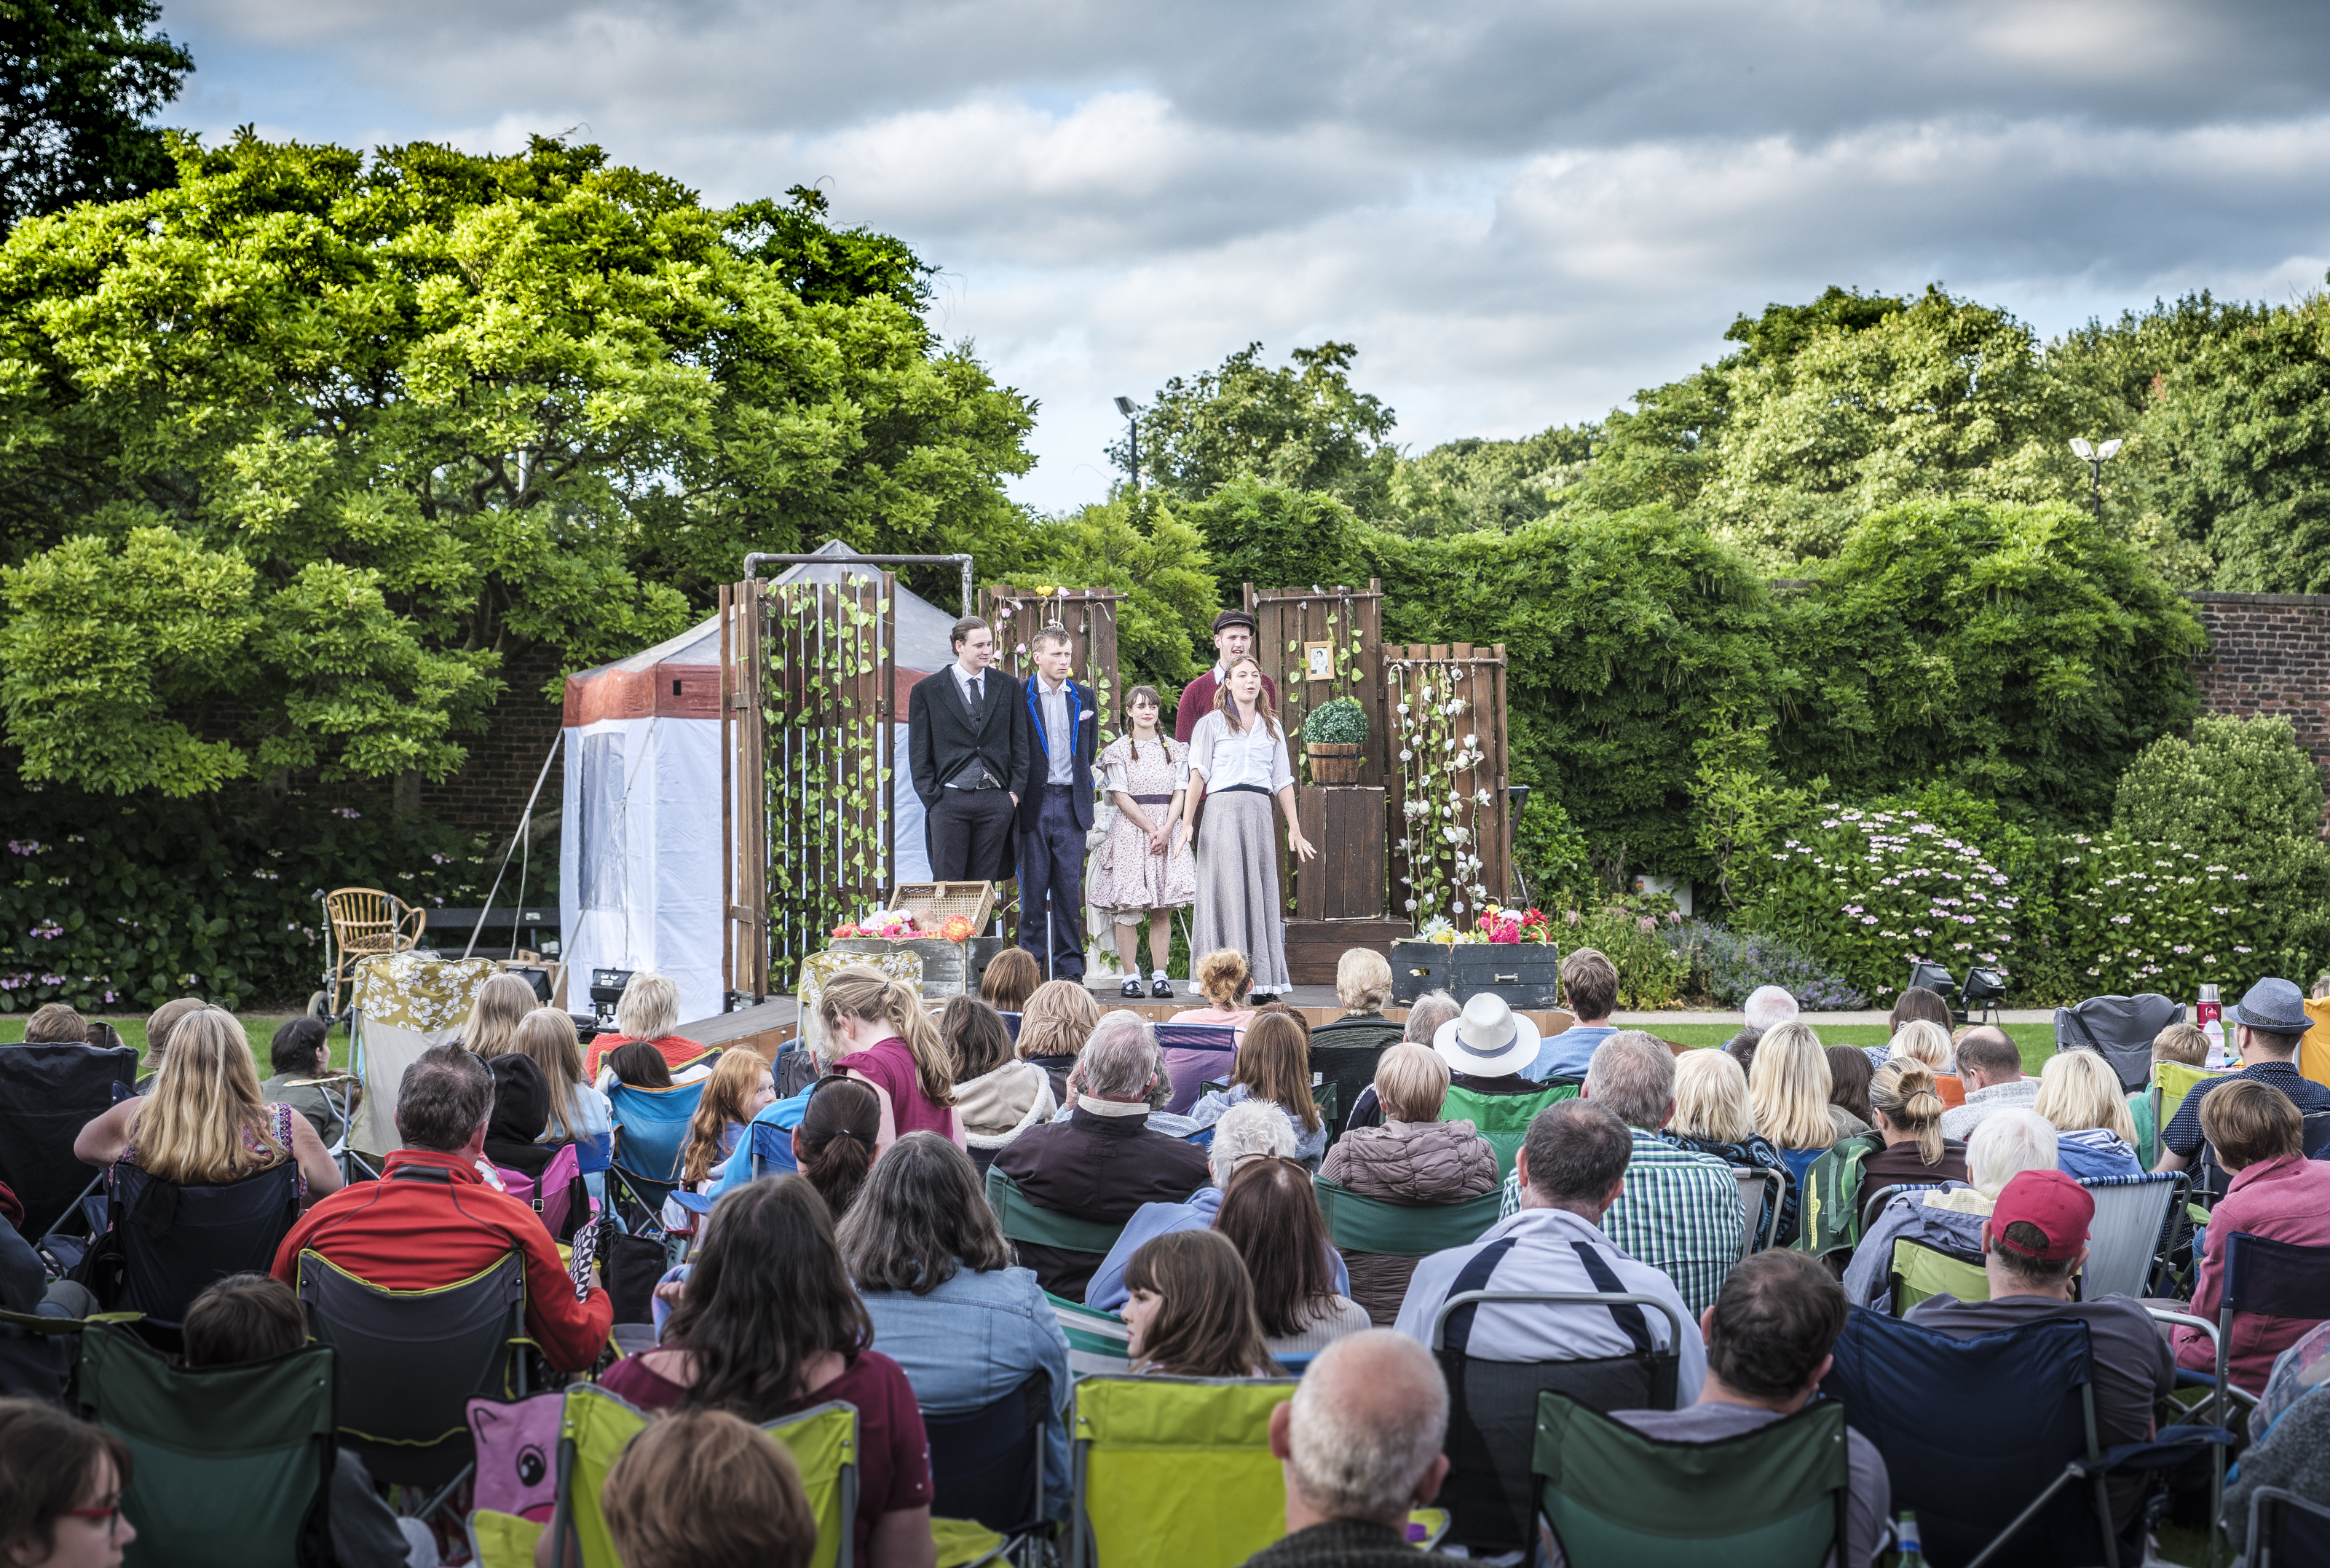 , Theatre in the Park returns to Chorley, Skem News - The Top Source for Skelmersdale News